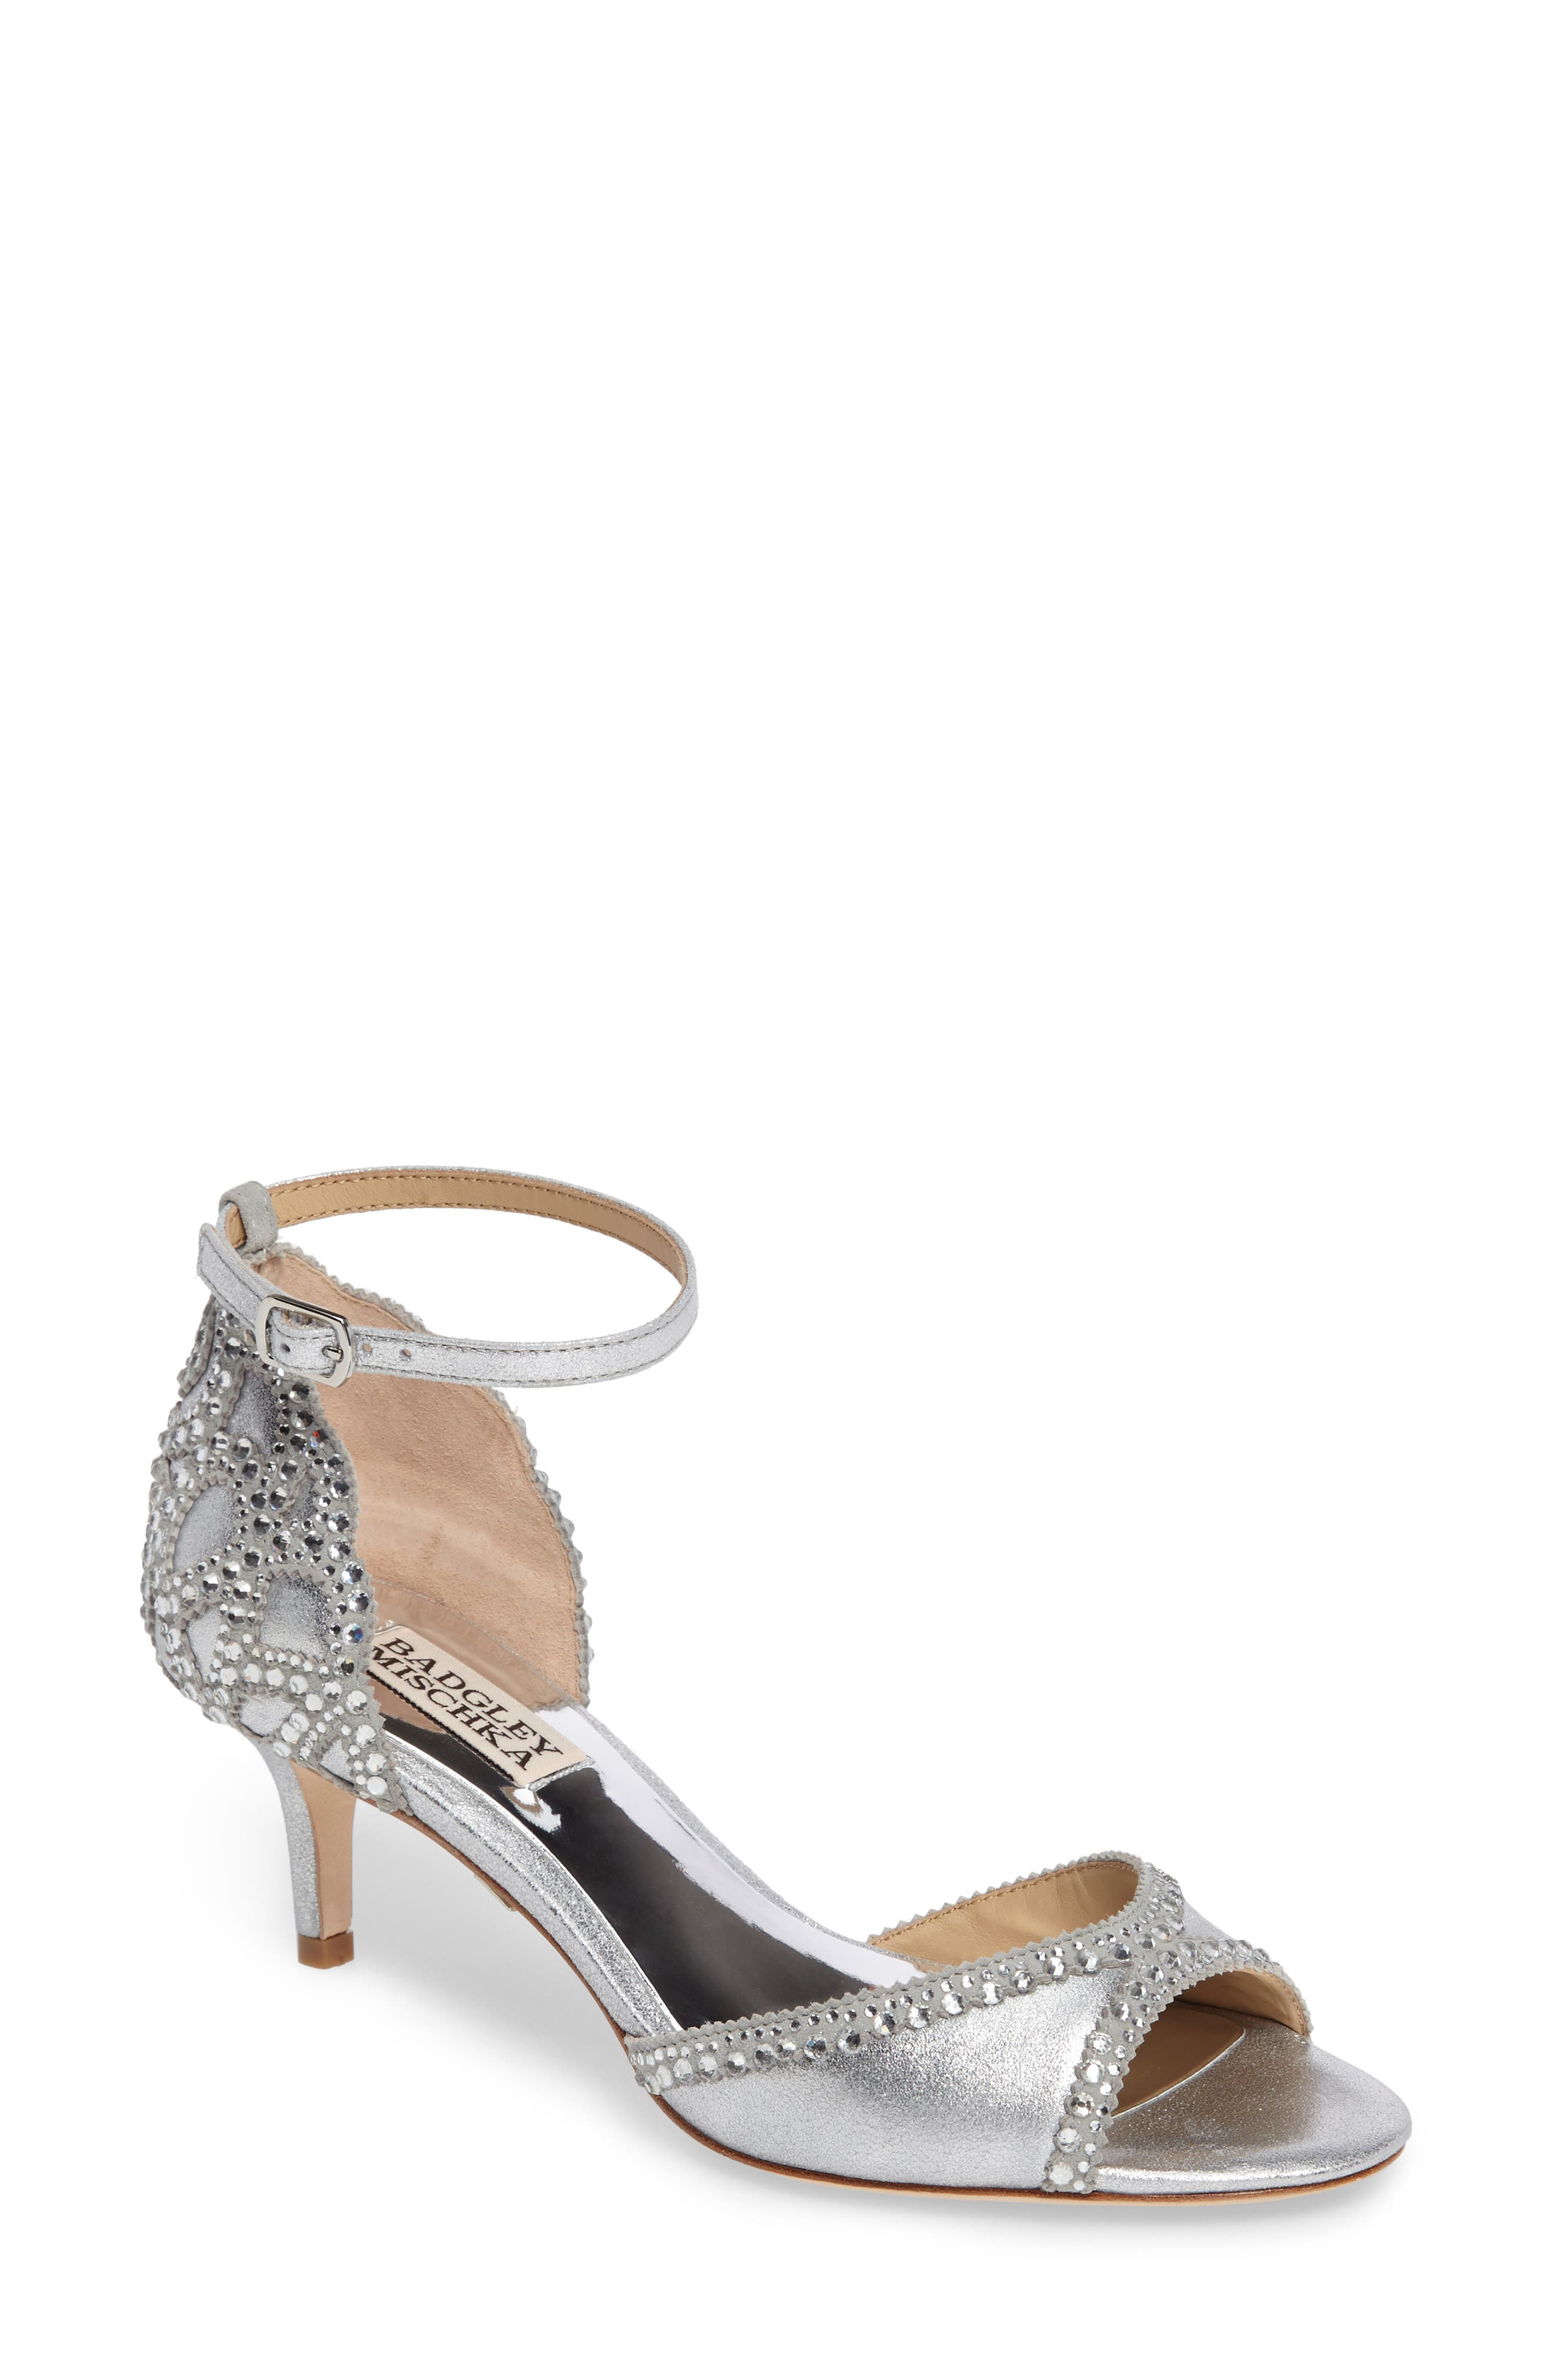 'Gillian' Crystal Embellished d'Orsay Sandal,                         Main,                         color, SILVER METALLIC SUEDE